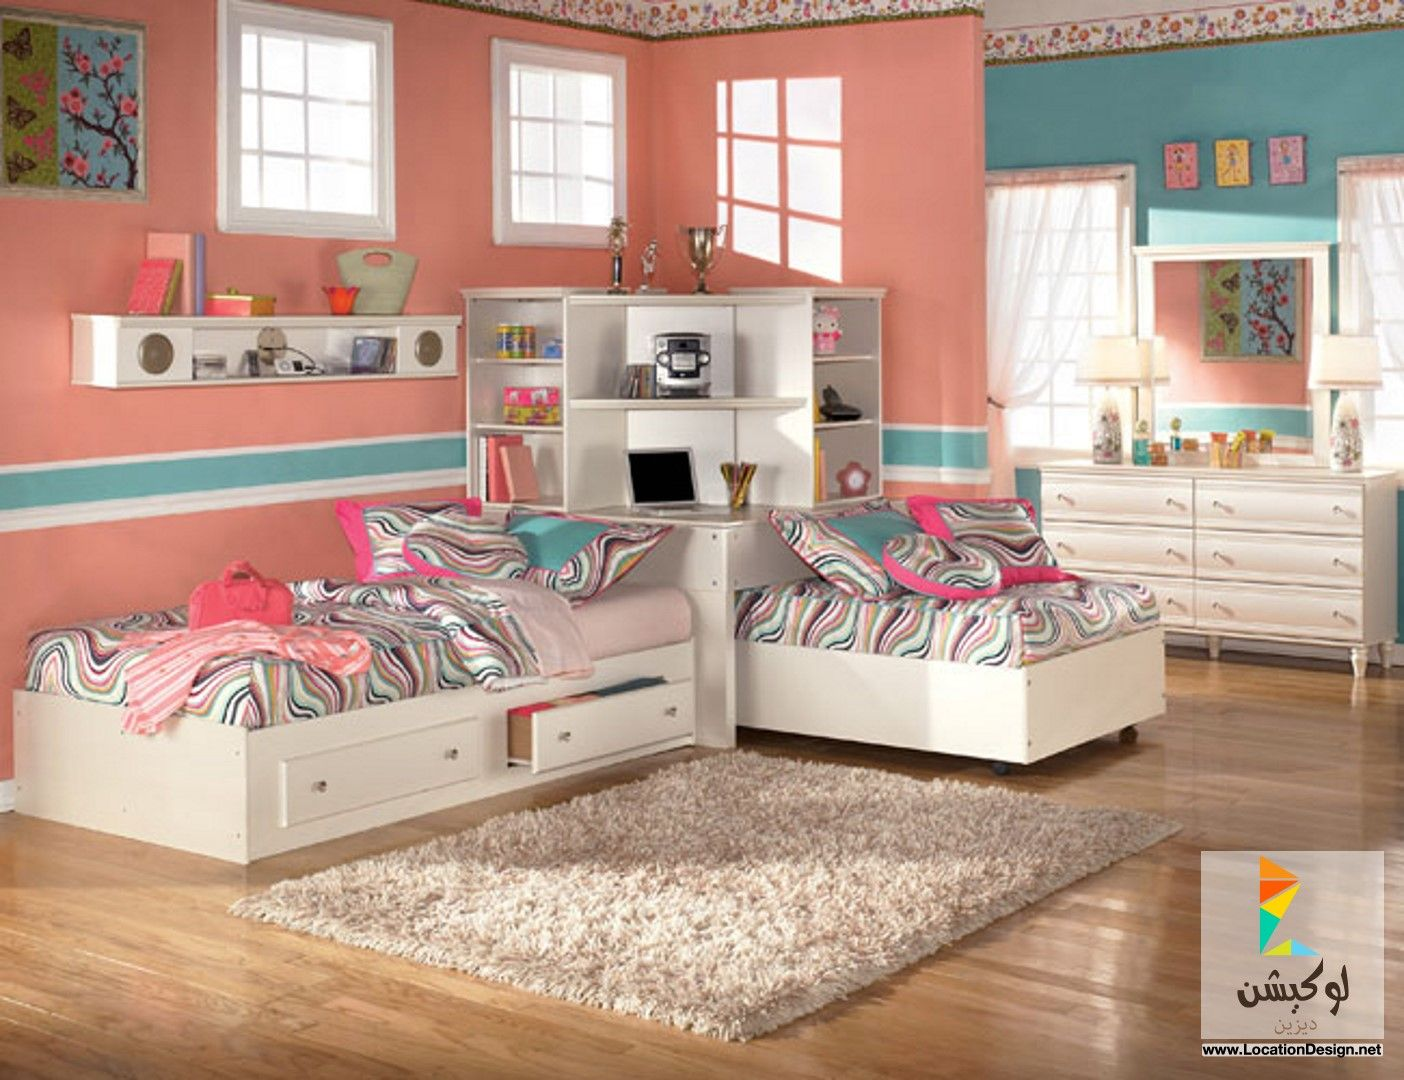 Kids Bedroom Furniture Sets Comfort For Your Children Comfort For Children Is The Main Purpose For